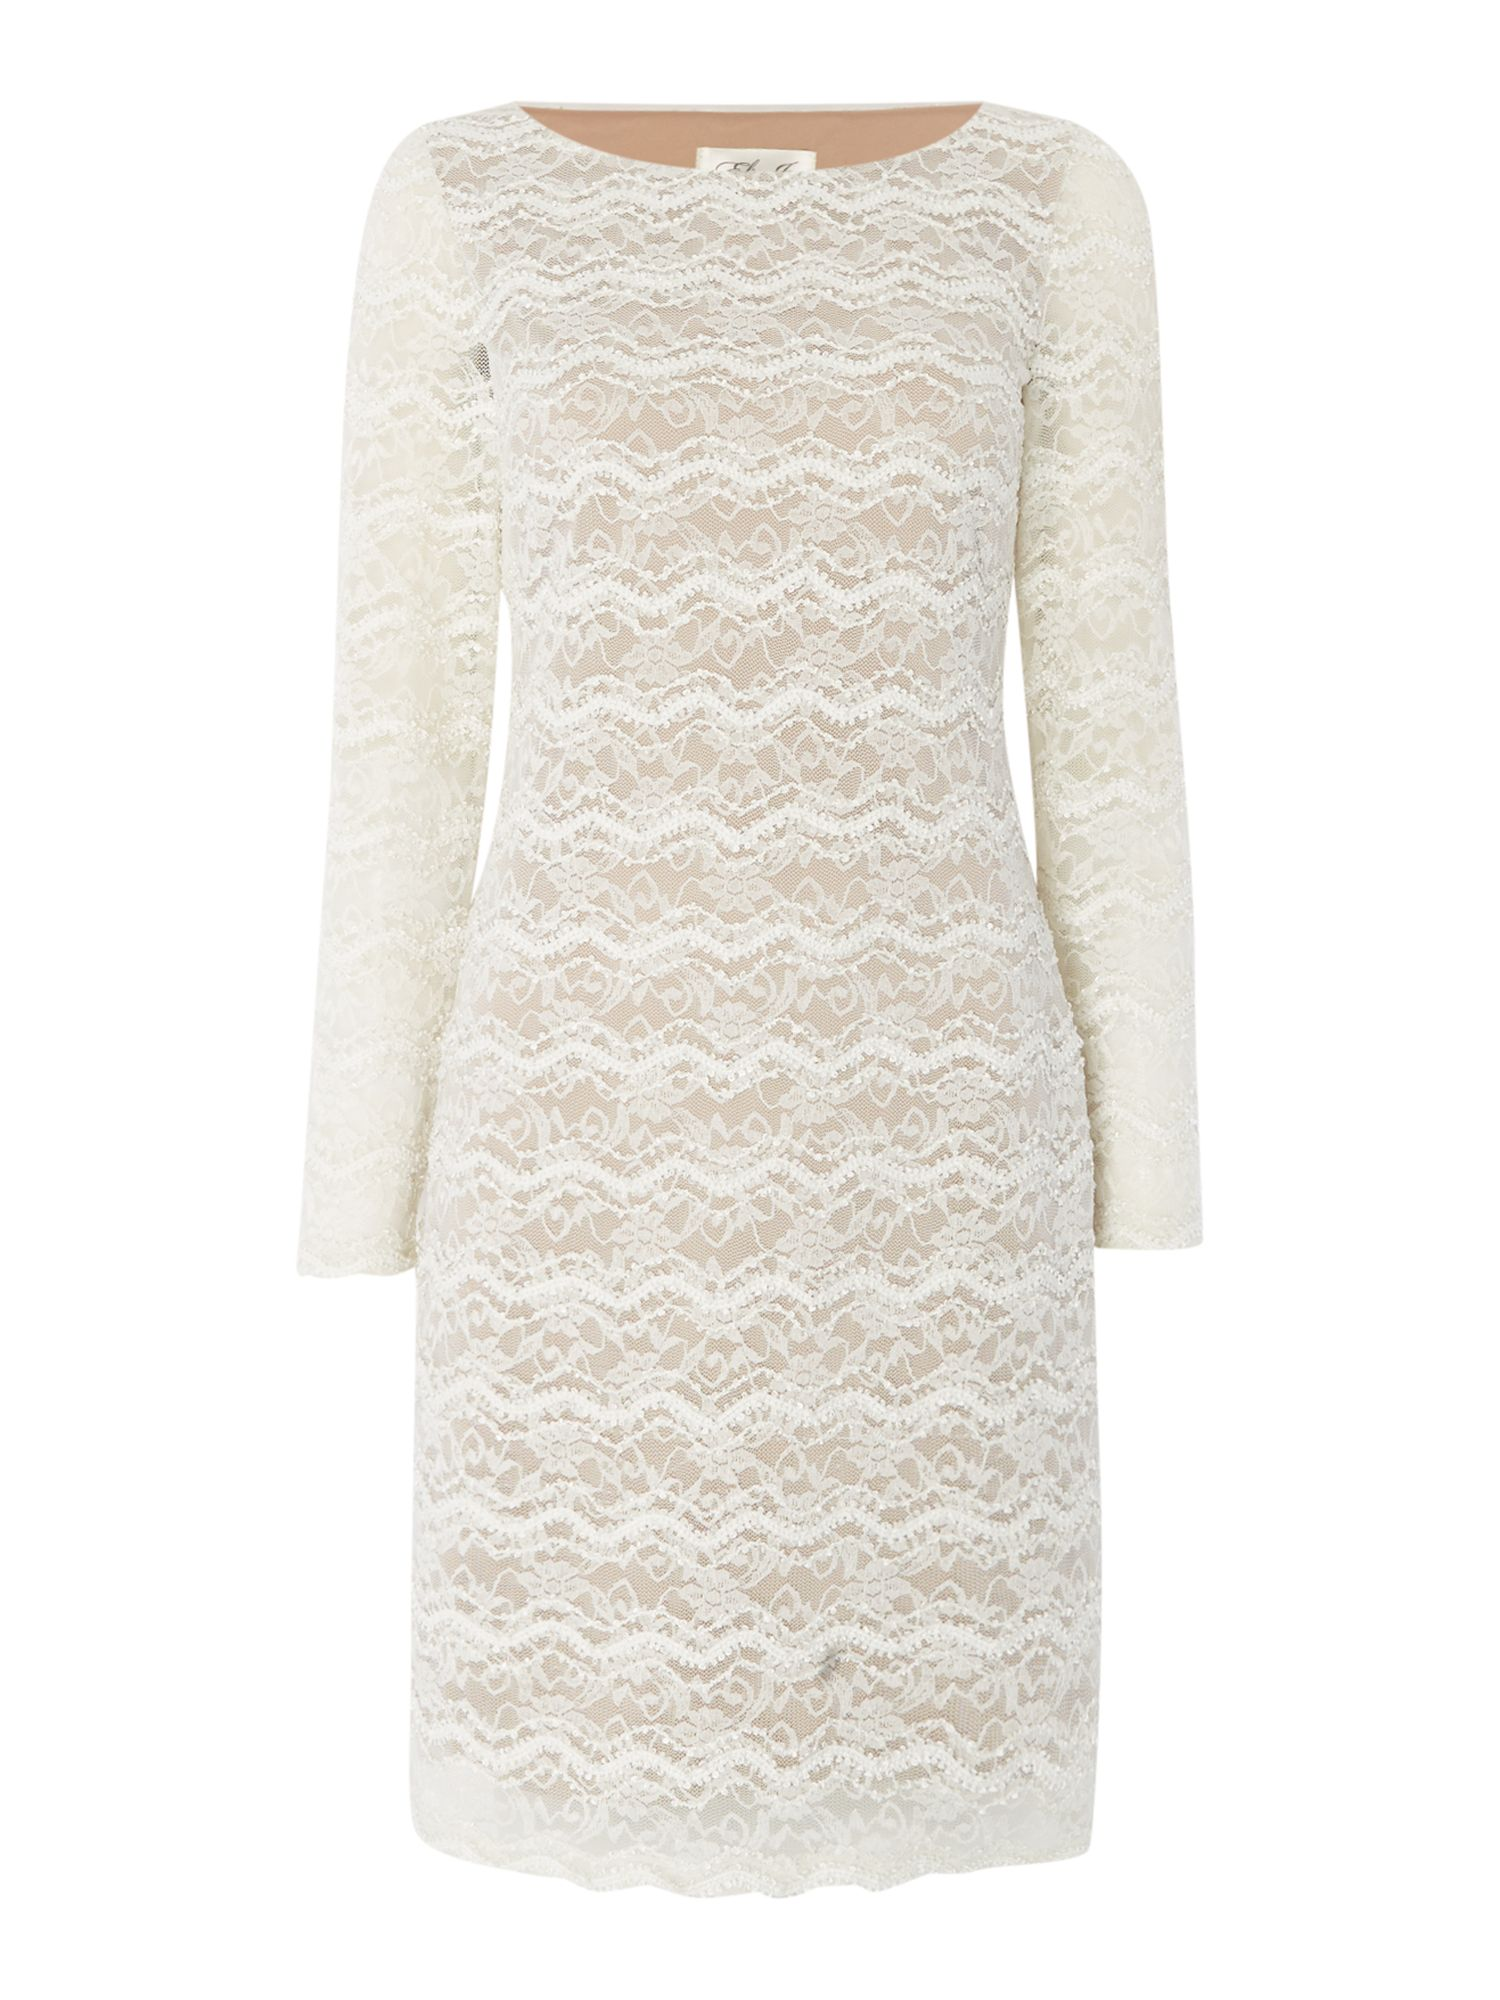 Eliza J Long sleeve textured lace shift dress, White